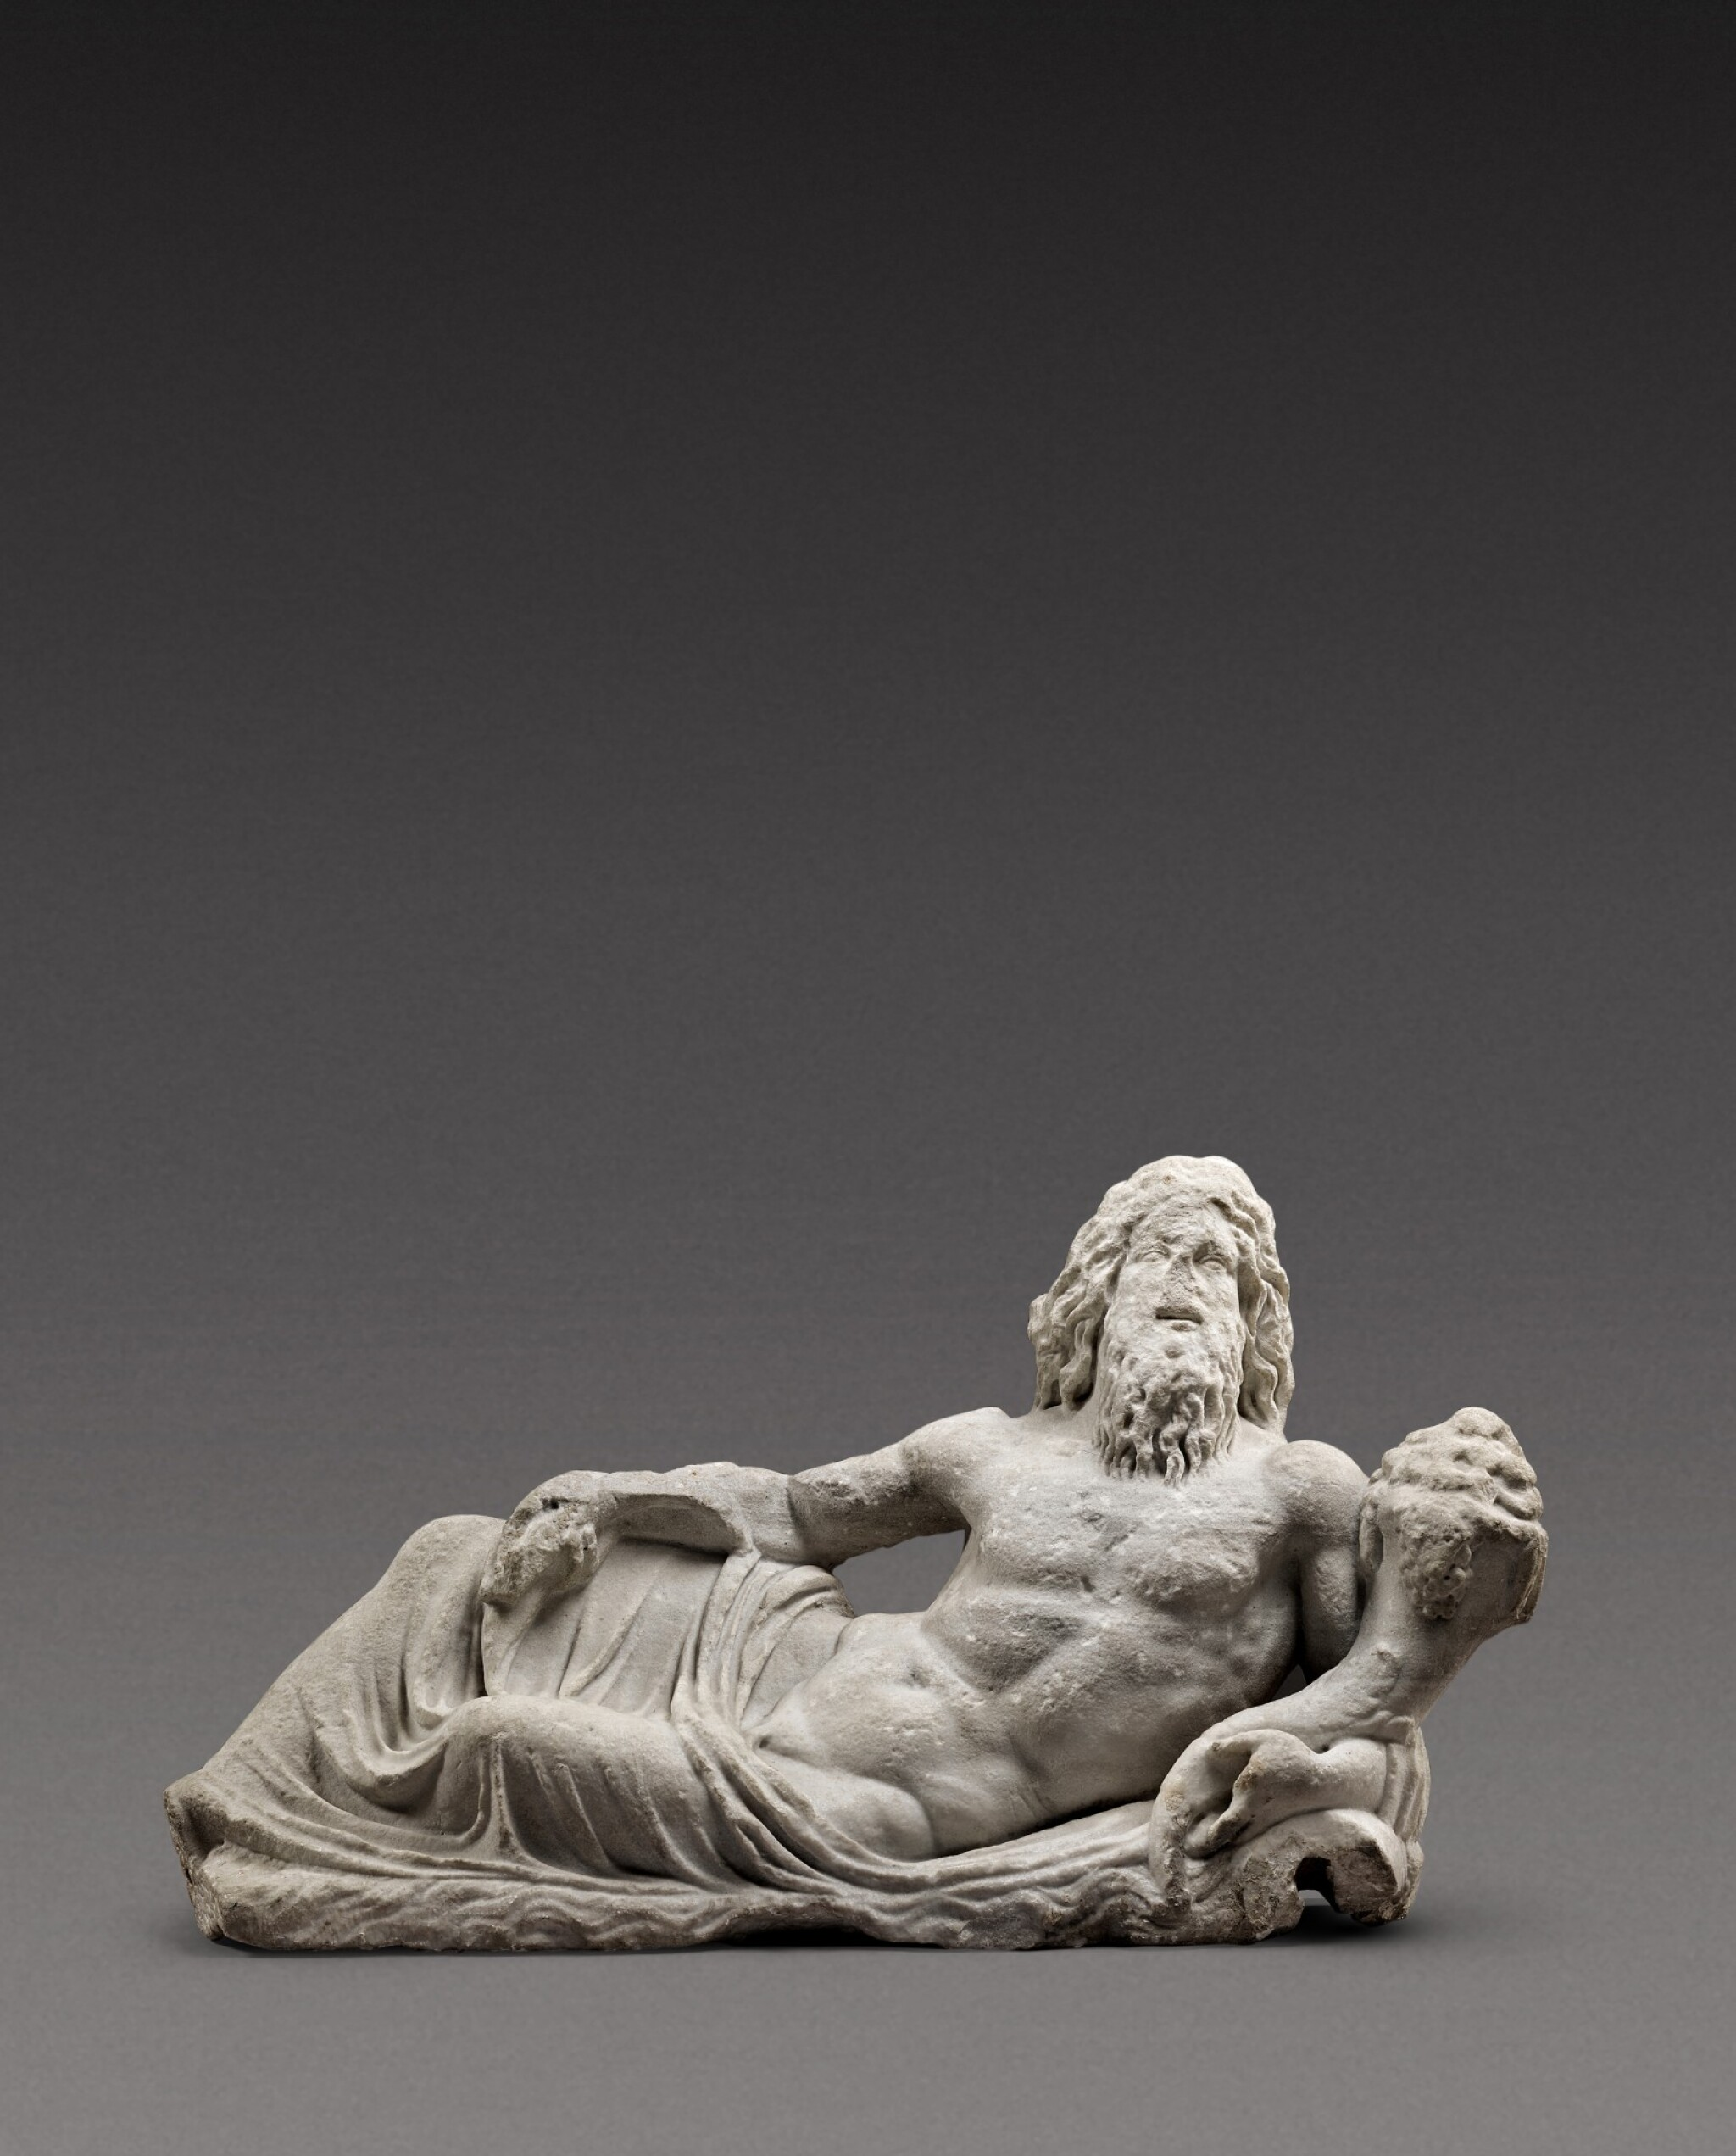 View 1 of Lot 68. A Roman Marble Fountain Figure of a River God, circa 2nd Century A.D..